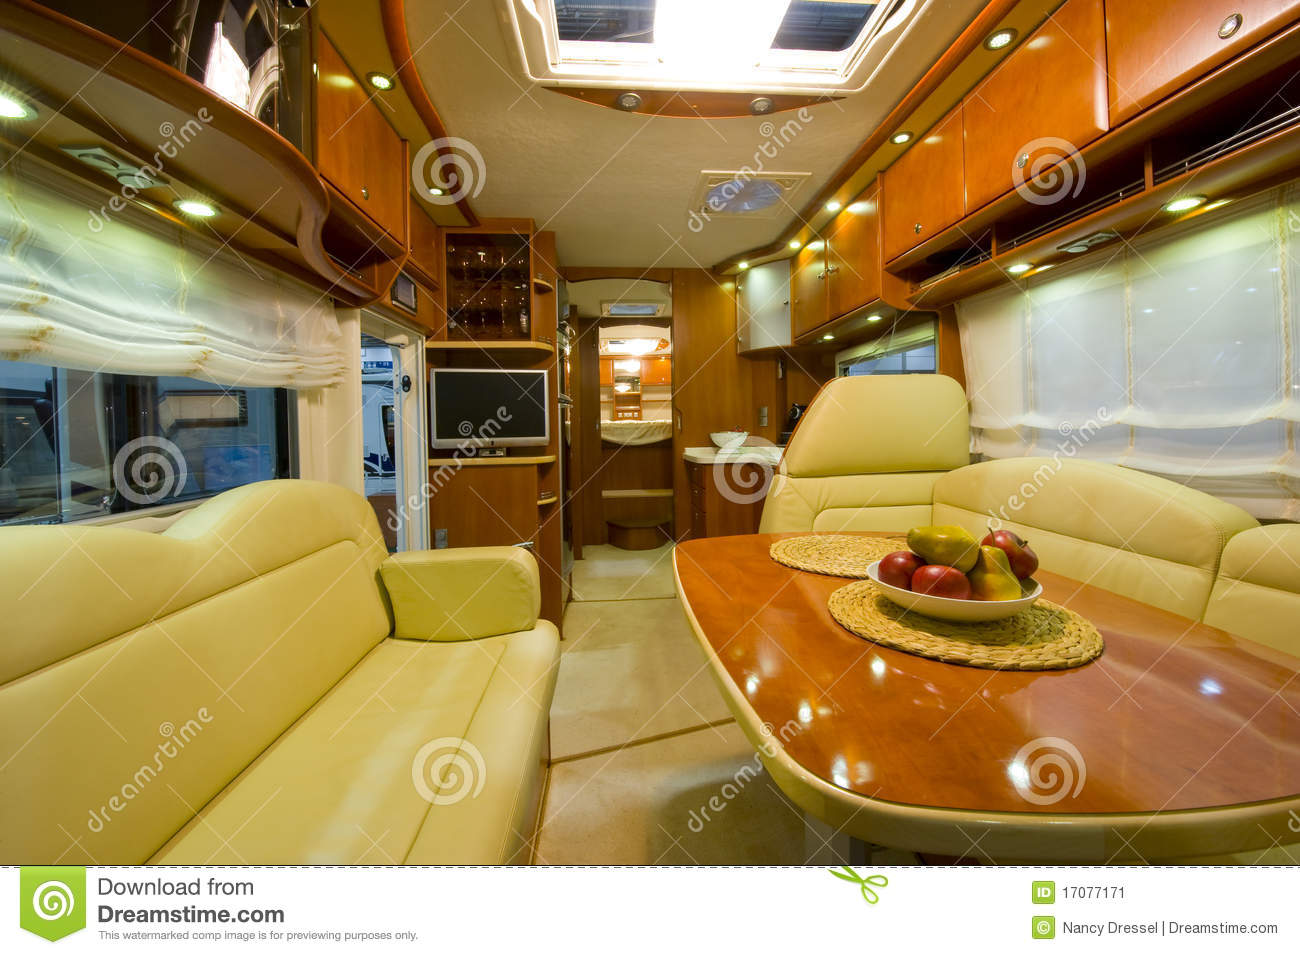 Camping car neuf int rieur image stock image 17077171 for Interieur de camping car